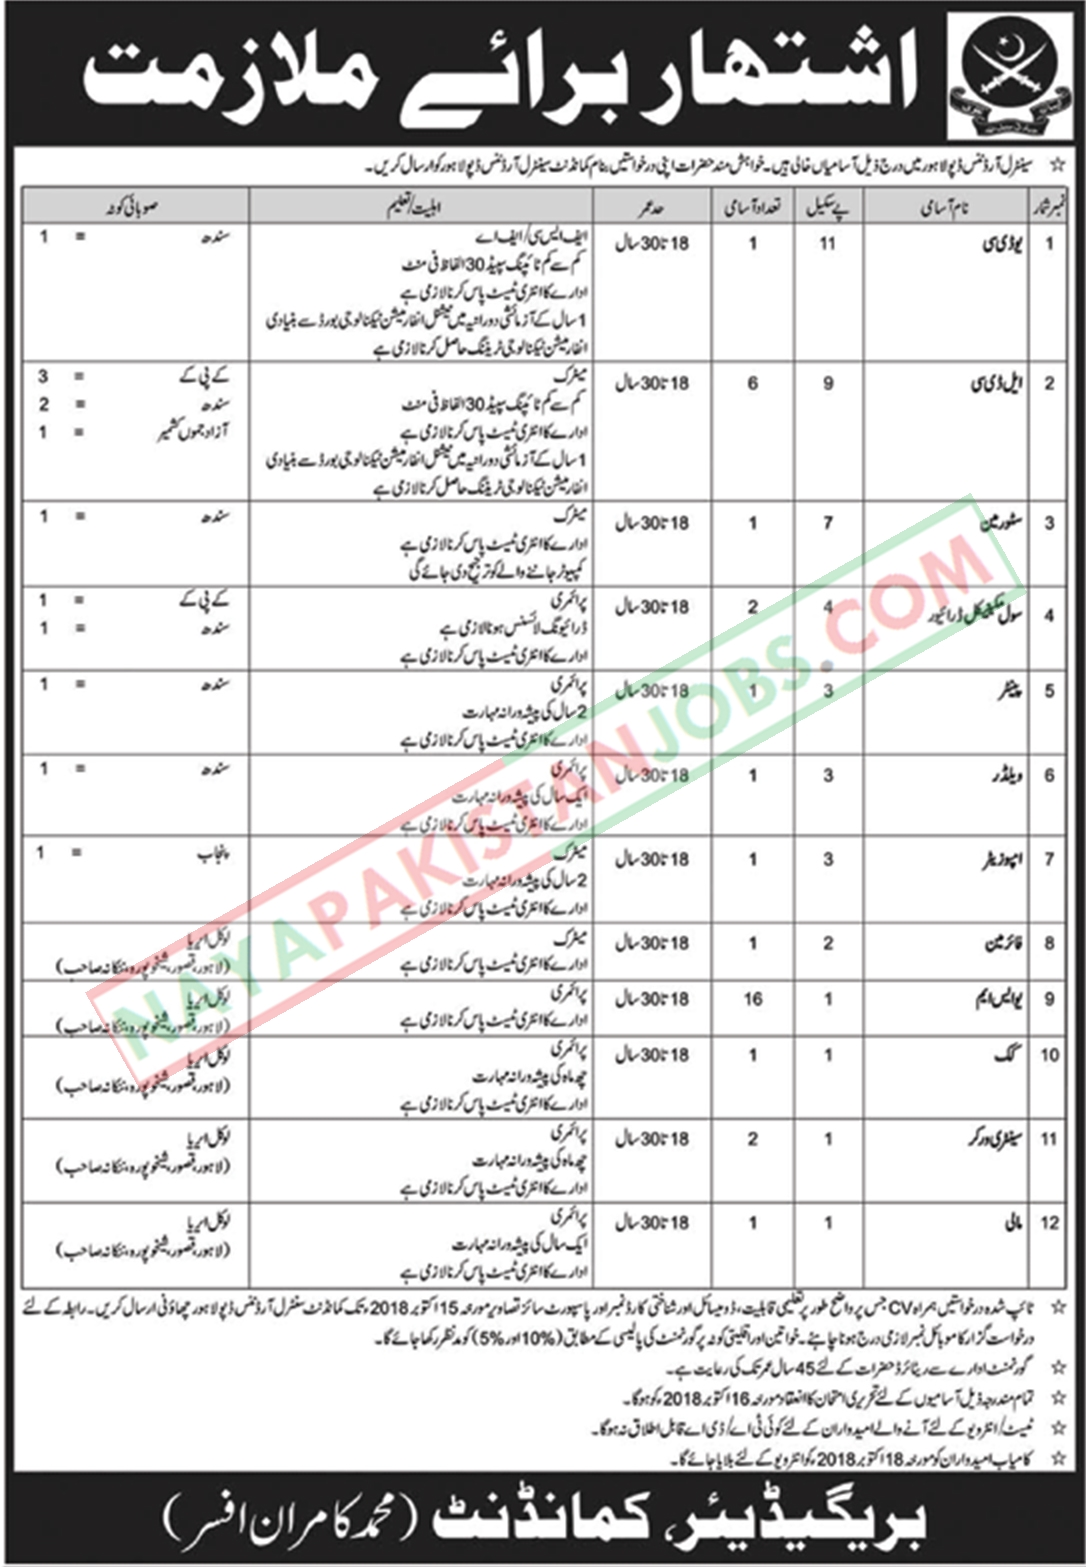 Latest Vacancies Announced in Pakistan Army at Central Ordnance Depot Lahore 01 October 2018 - Naya Pak Jobs